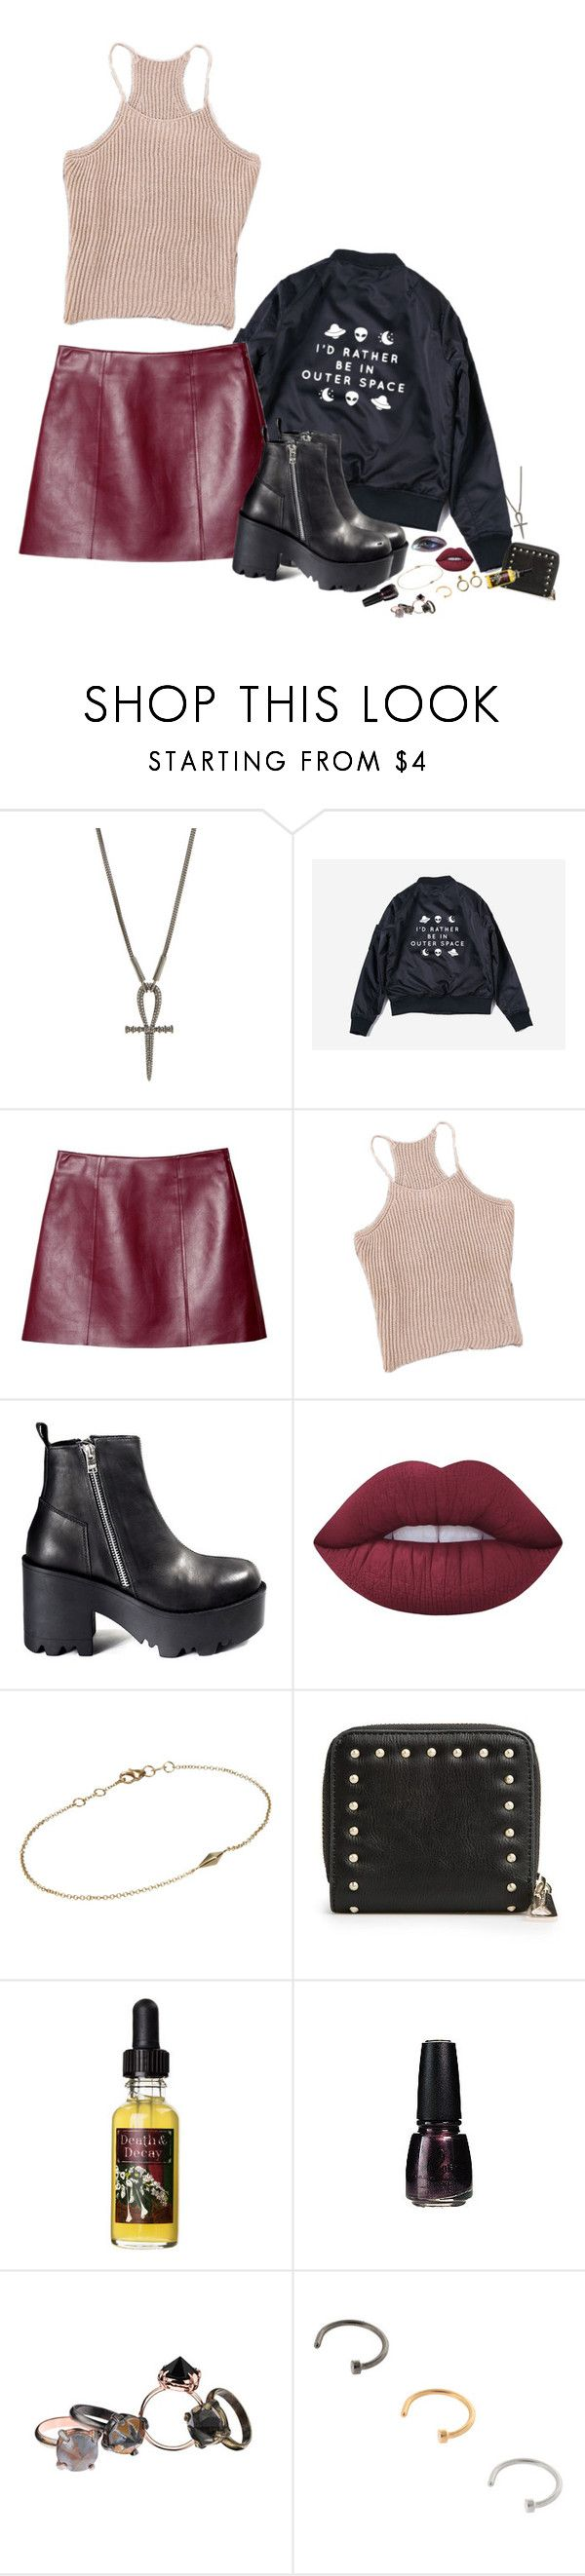 """""""Promise me a place in your house of memories"""" by oblivionsgarden ❤ liked on Polyvore featuring Lynn Ban, T By Alexander Wang, UNIF, Lime Crime, Deborah Pagani, MANGO, Amy Winehouse, ULTA and Made Her Think"""